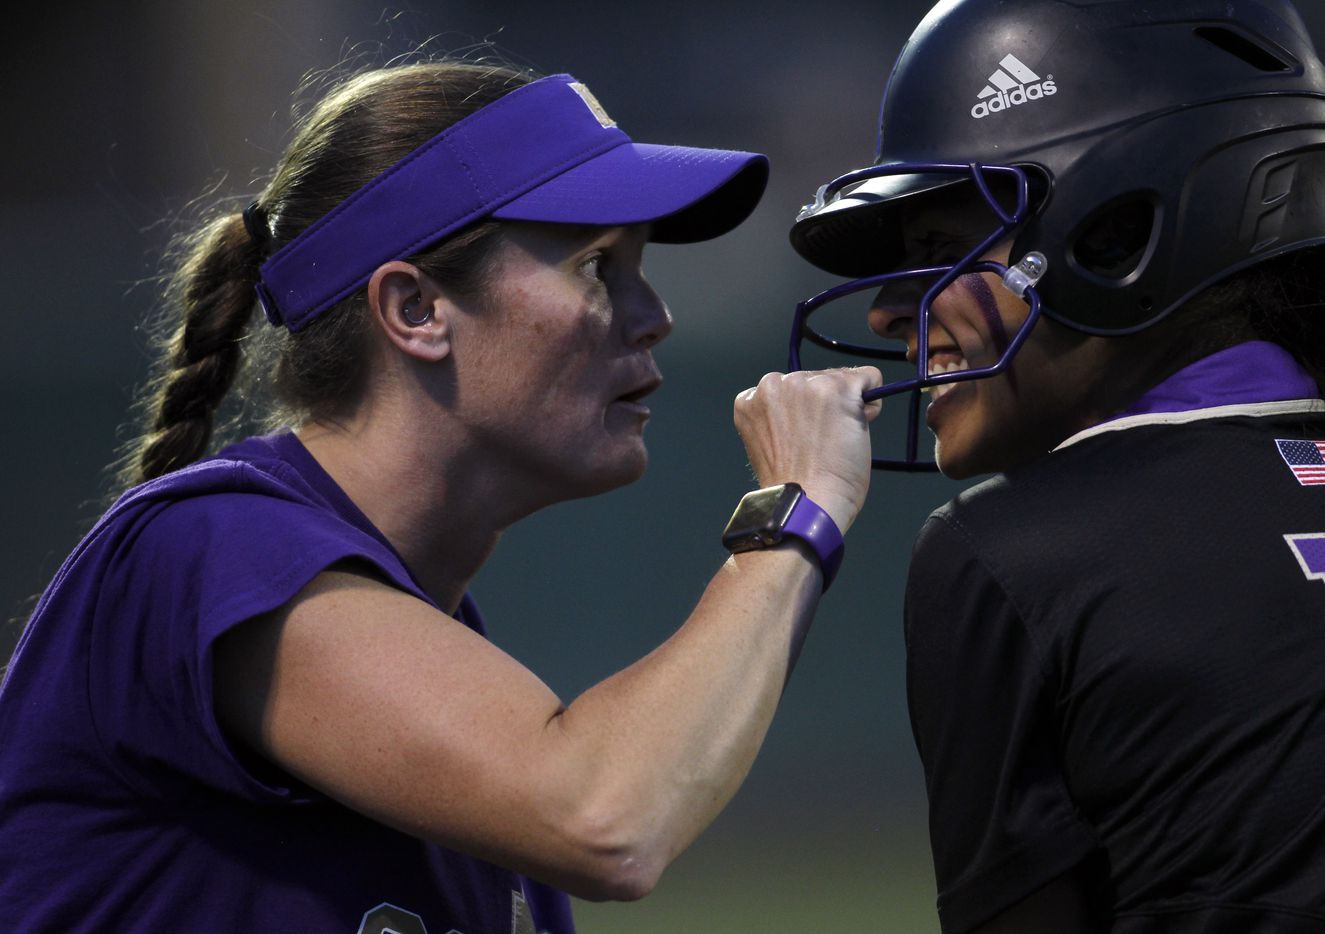 Hallsville assistant coach Sarah Hendrix, left, celebrates with outfielder Lily Soto (13) at first base after her RBI single in the top of the 3rd inning of play against Lovejoy. Game 2 of a best-of-3 Class 5A Region ll final series softball playoff game was  held at Rockwall High School in Rockwall on May 27, 2021. (Steve Hamm/ Special Contributor)